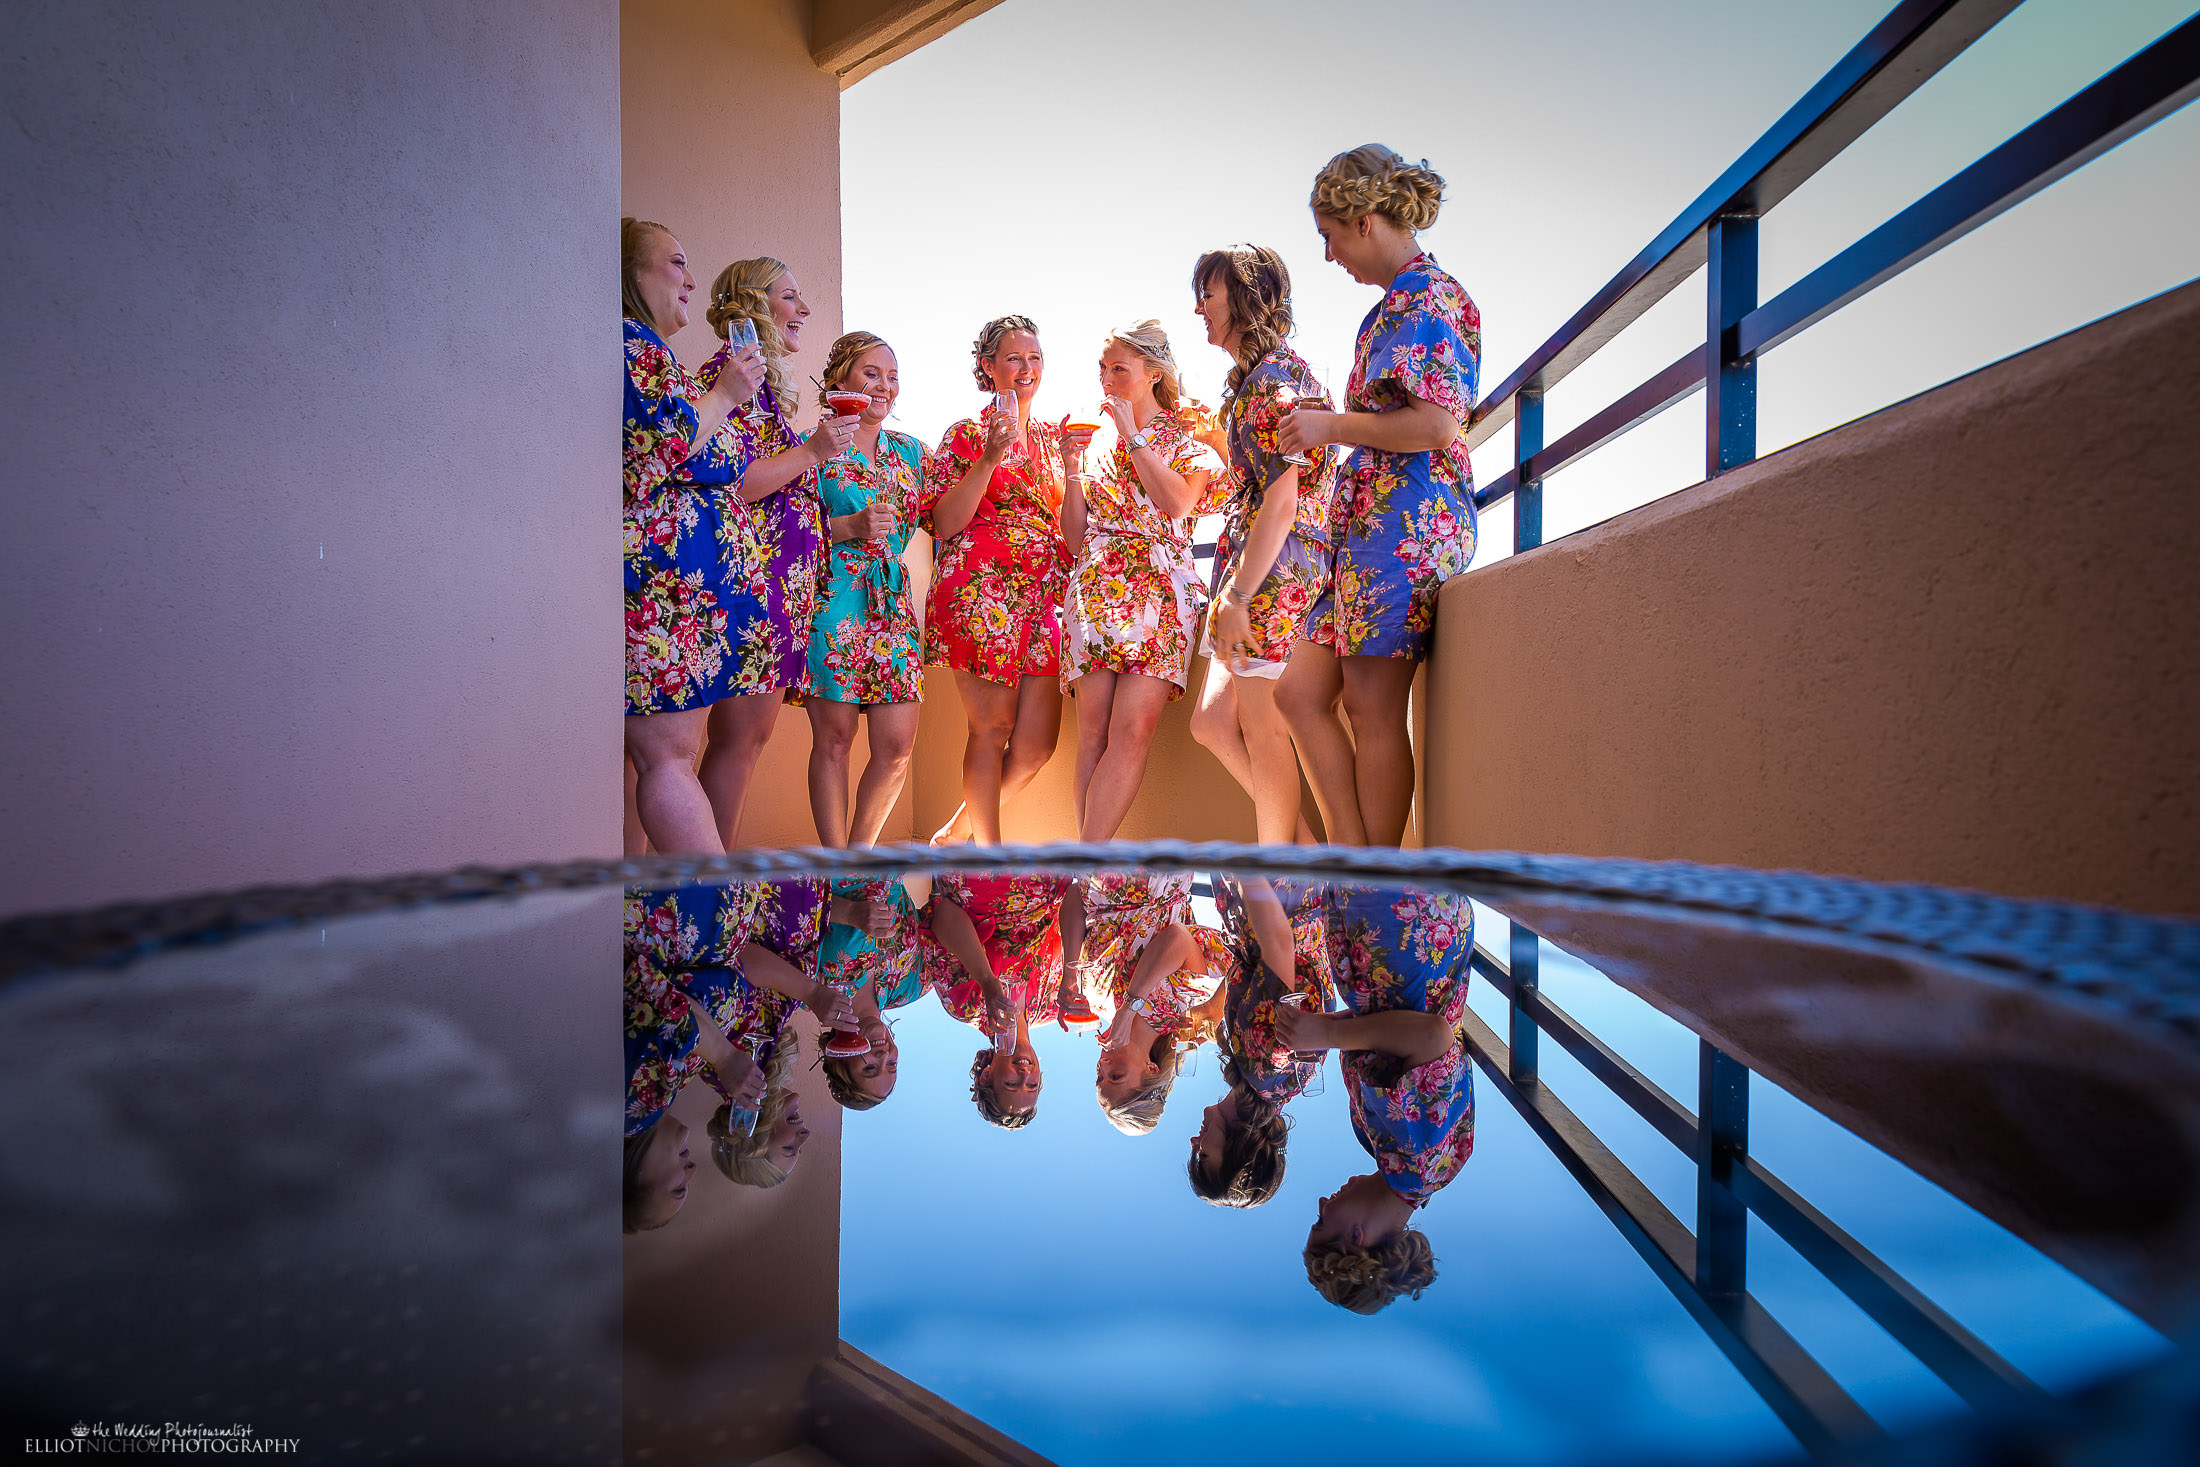 Bride with her bridesmaids having pre-ceremony drinks on the balcony. Photo by Elliot Nichol Photography.